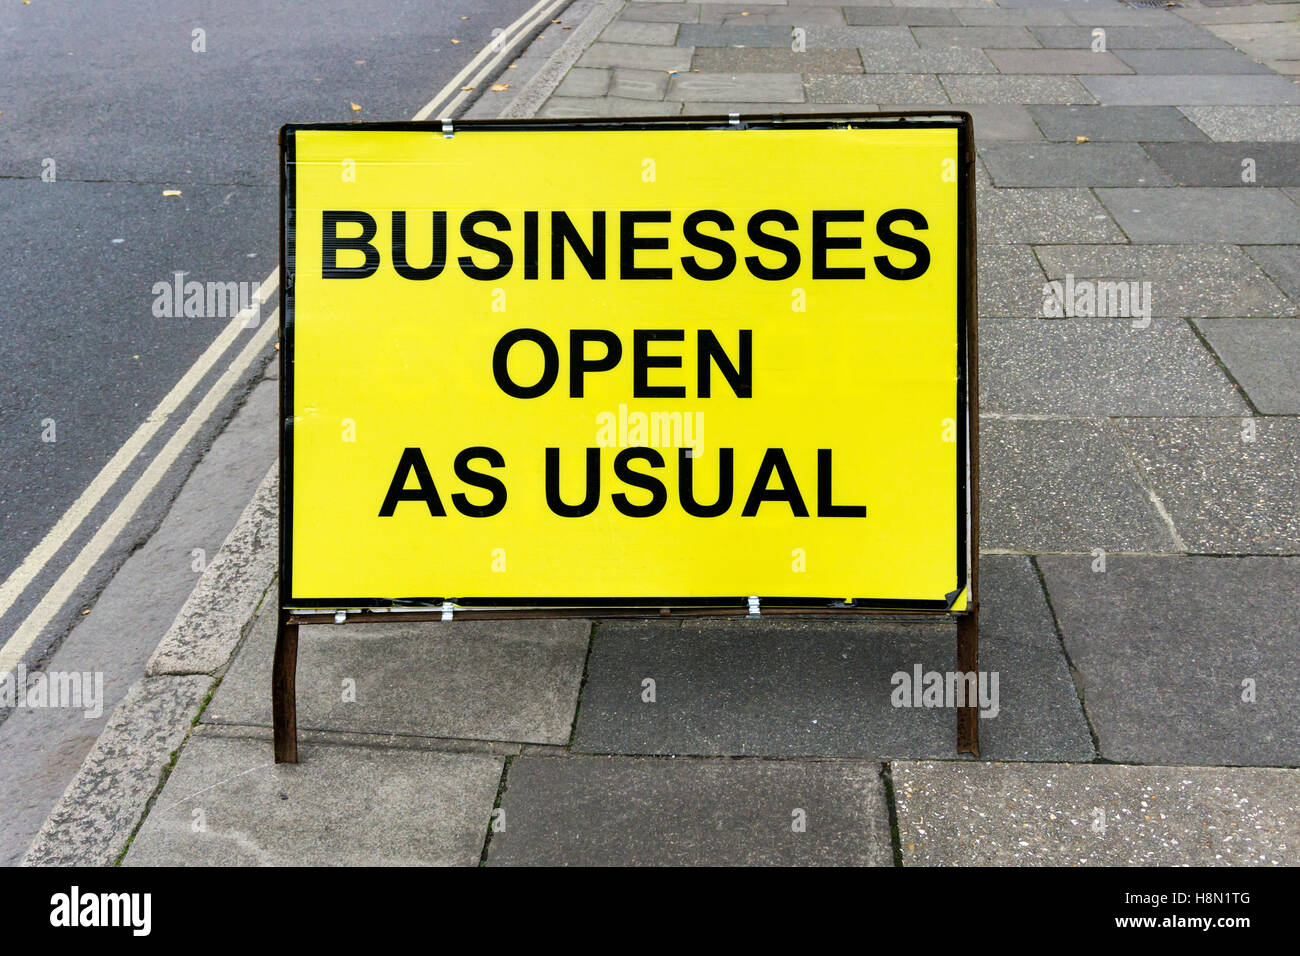 A yellow Businesses Open as Usual sign. - Stock Image